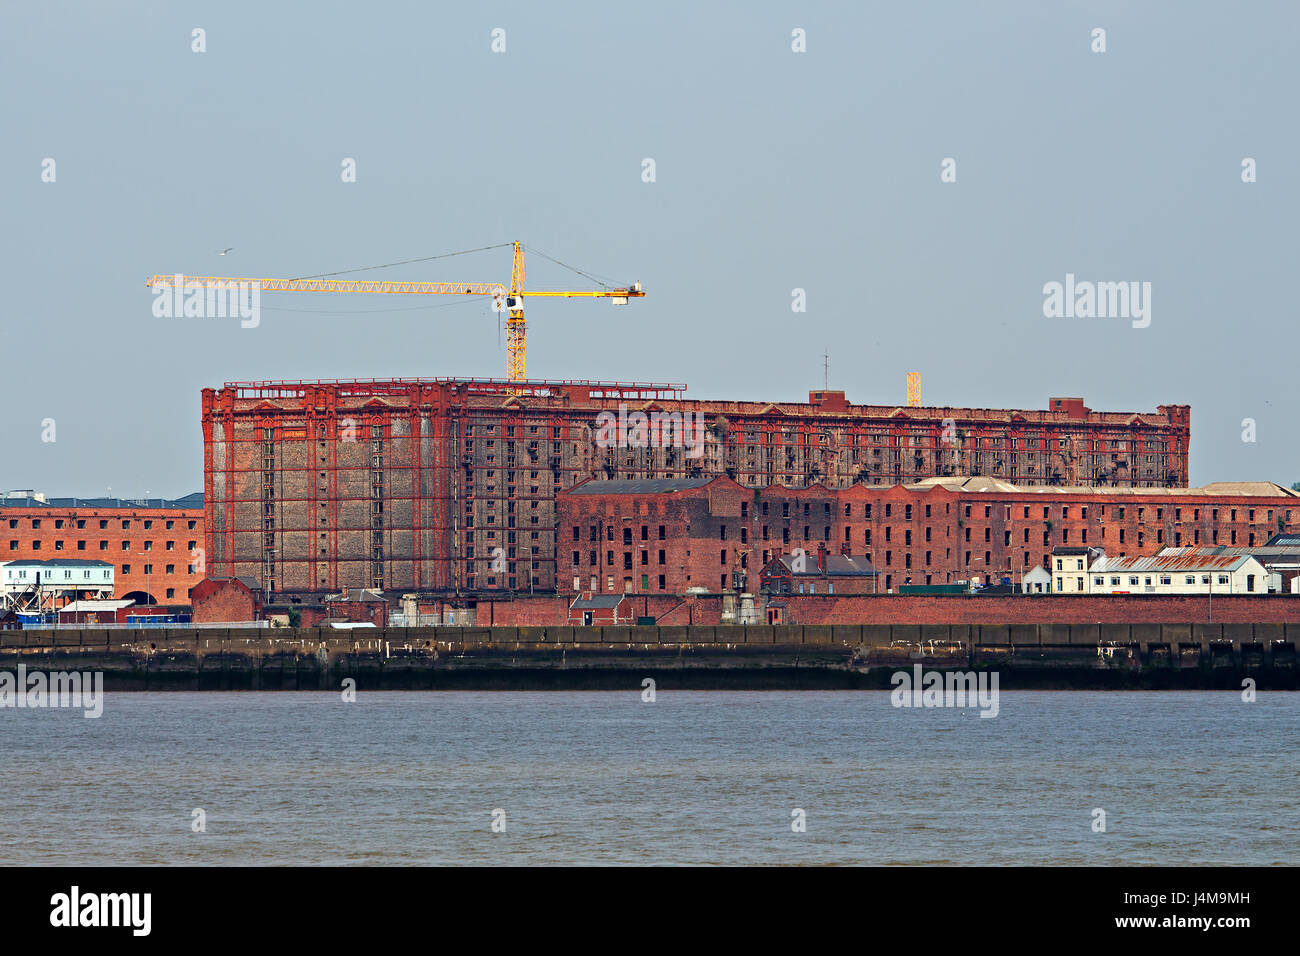 A view of Stanley Dock Tobacco Warehouse Liverpool taken from Seacombe Stock Photo